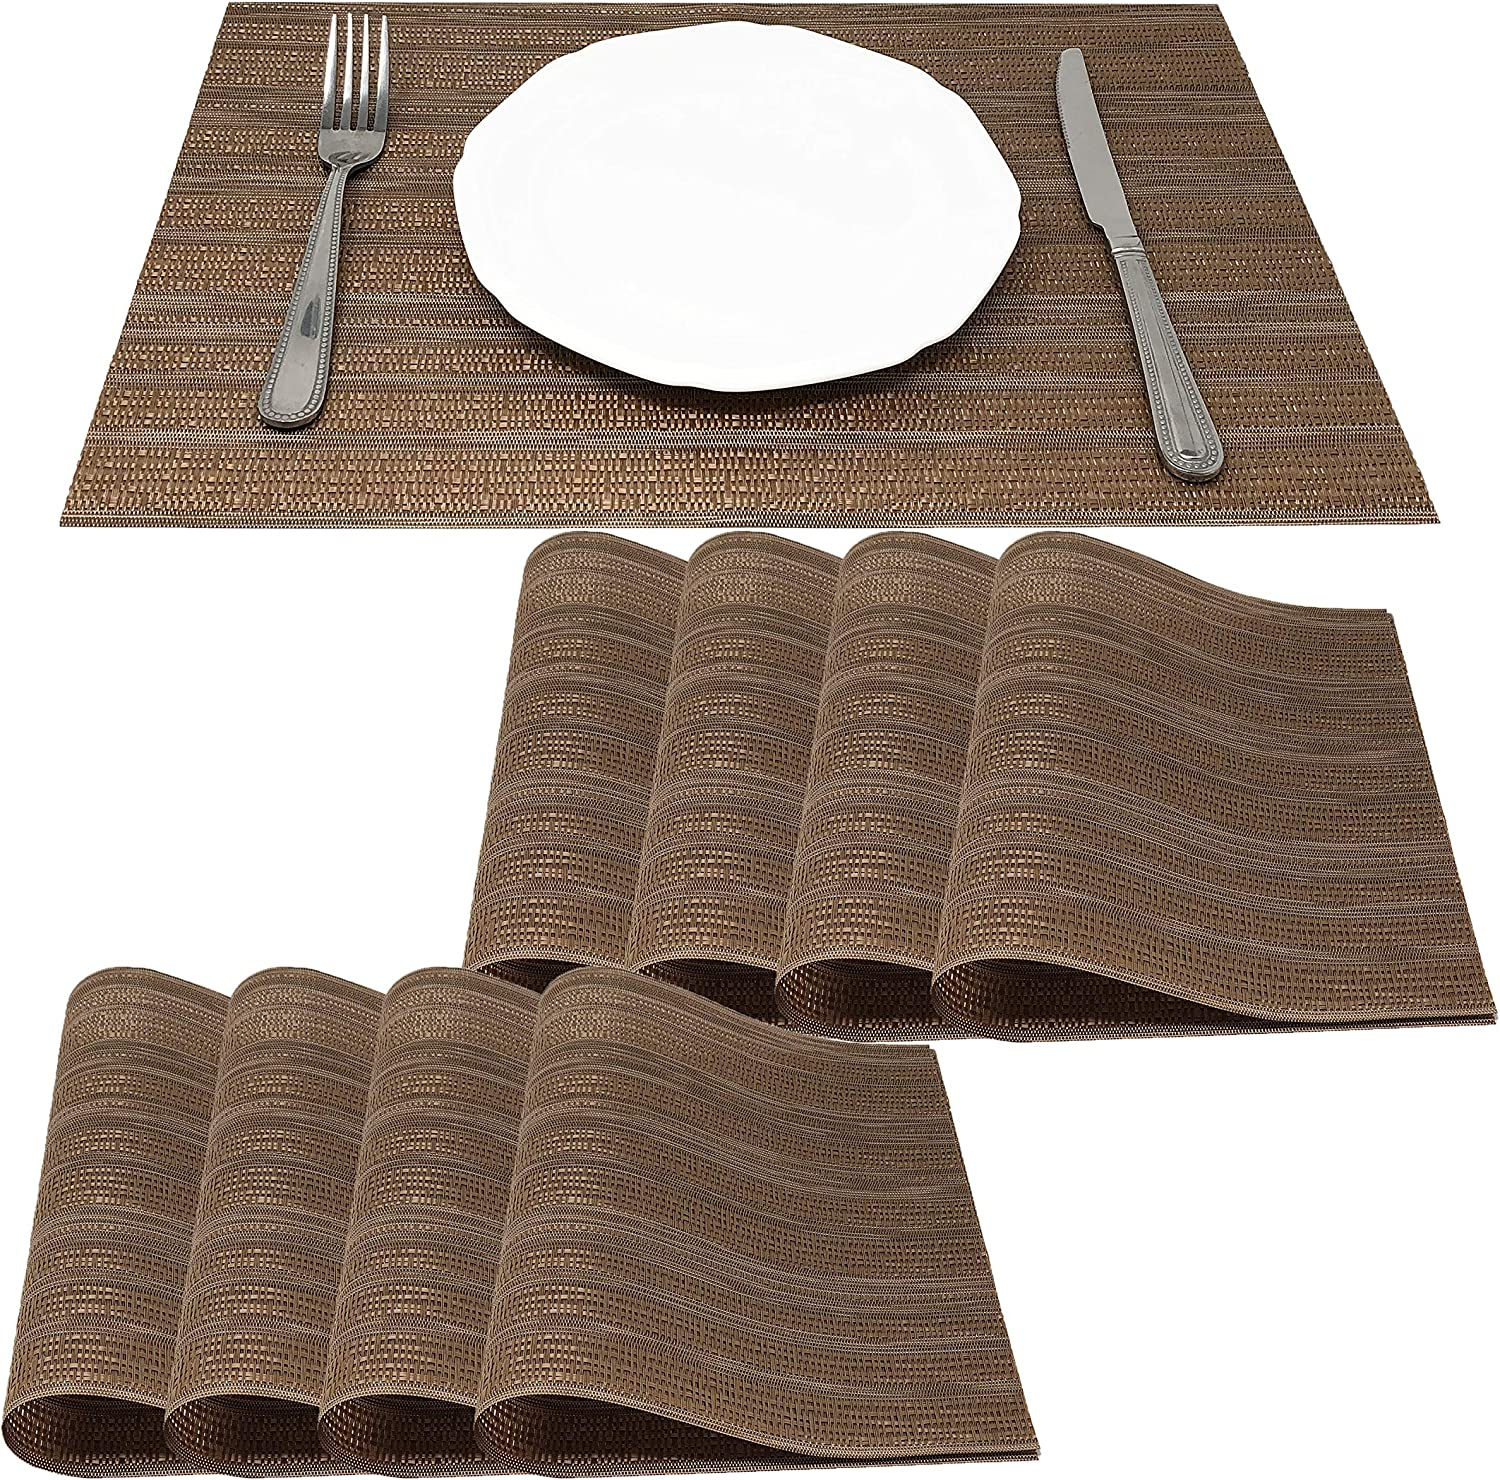 Amazon Com Allgala 8 Pack Dining Table Pvc Placemat Set Protect Table From Heat Stain Scratch And Anti Skid Style Coffee Stripes Hd80202 Home Kitchen